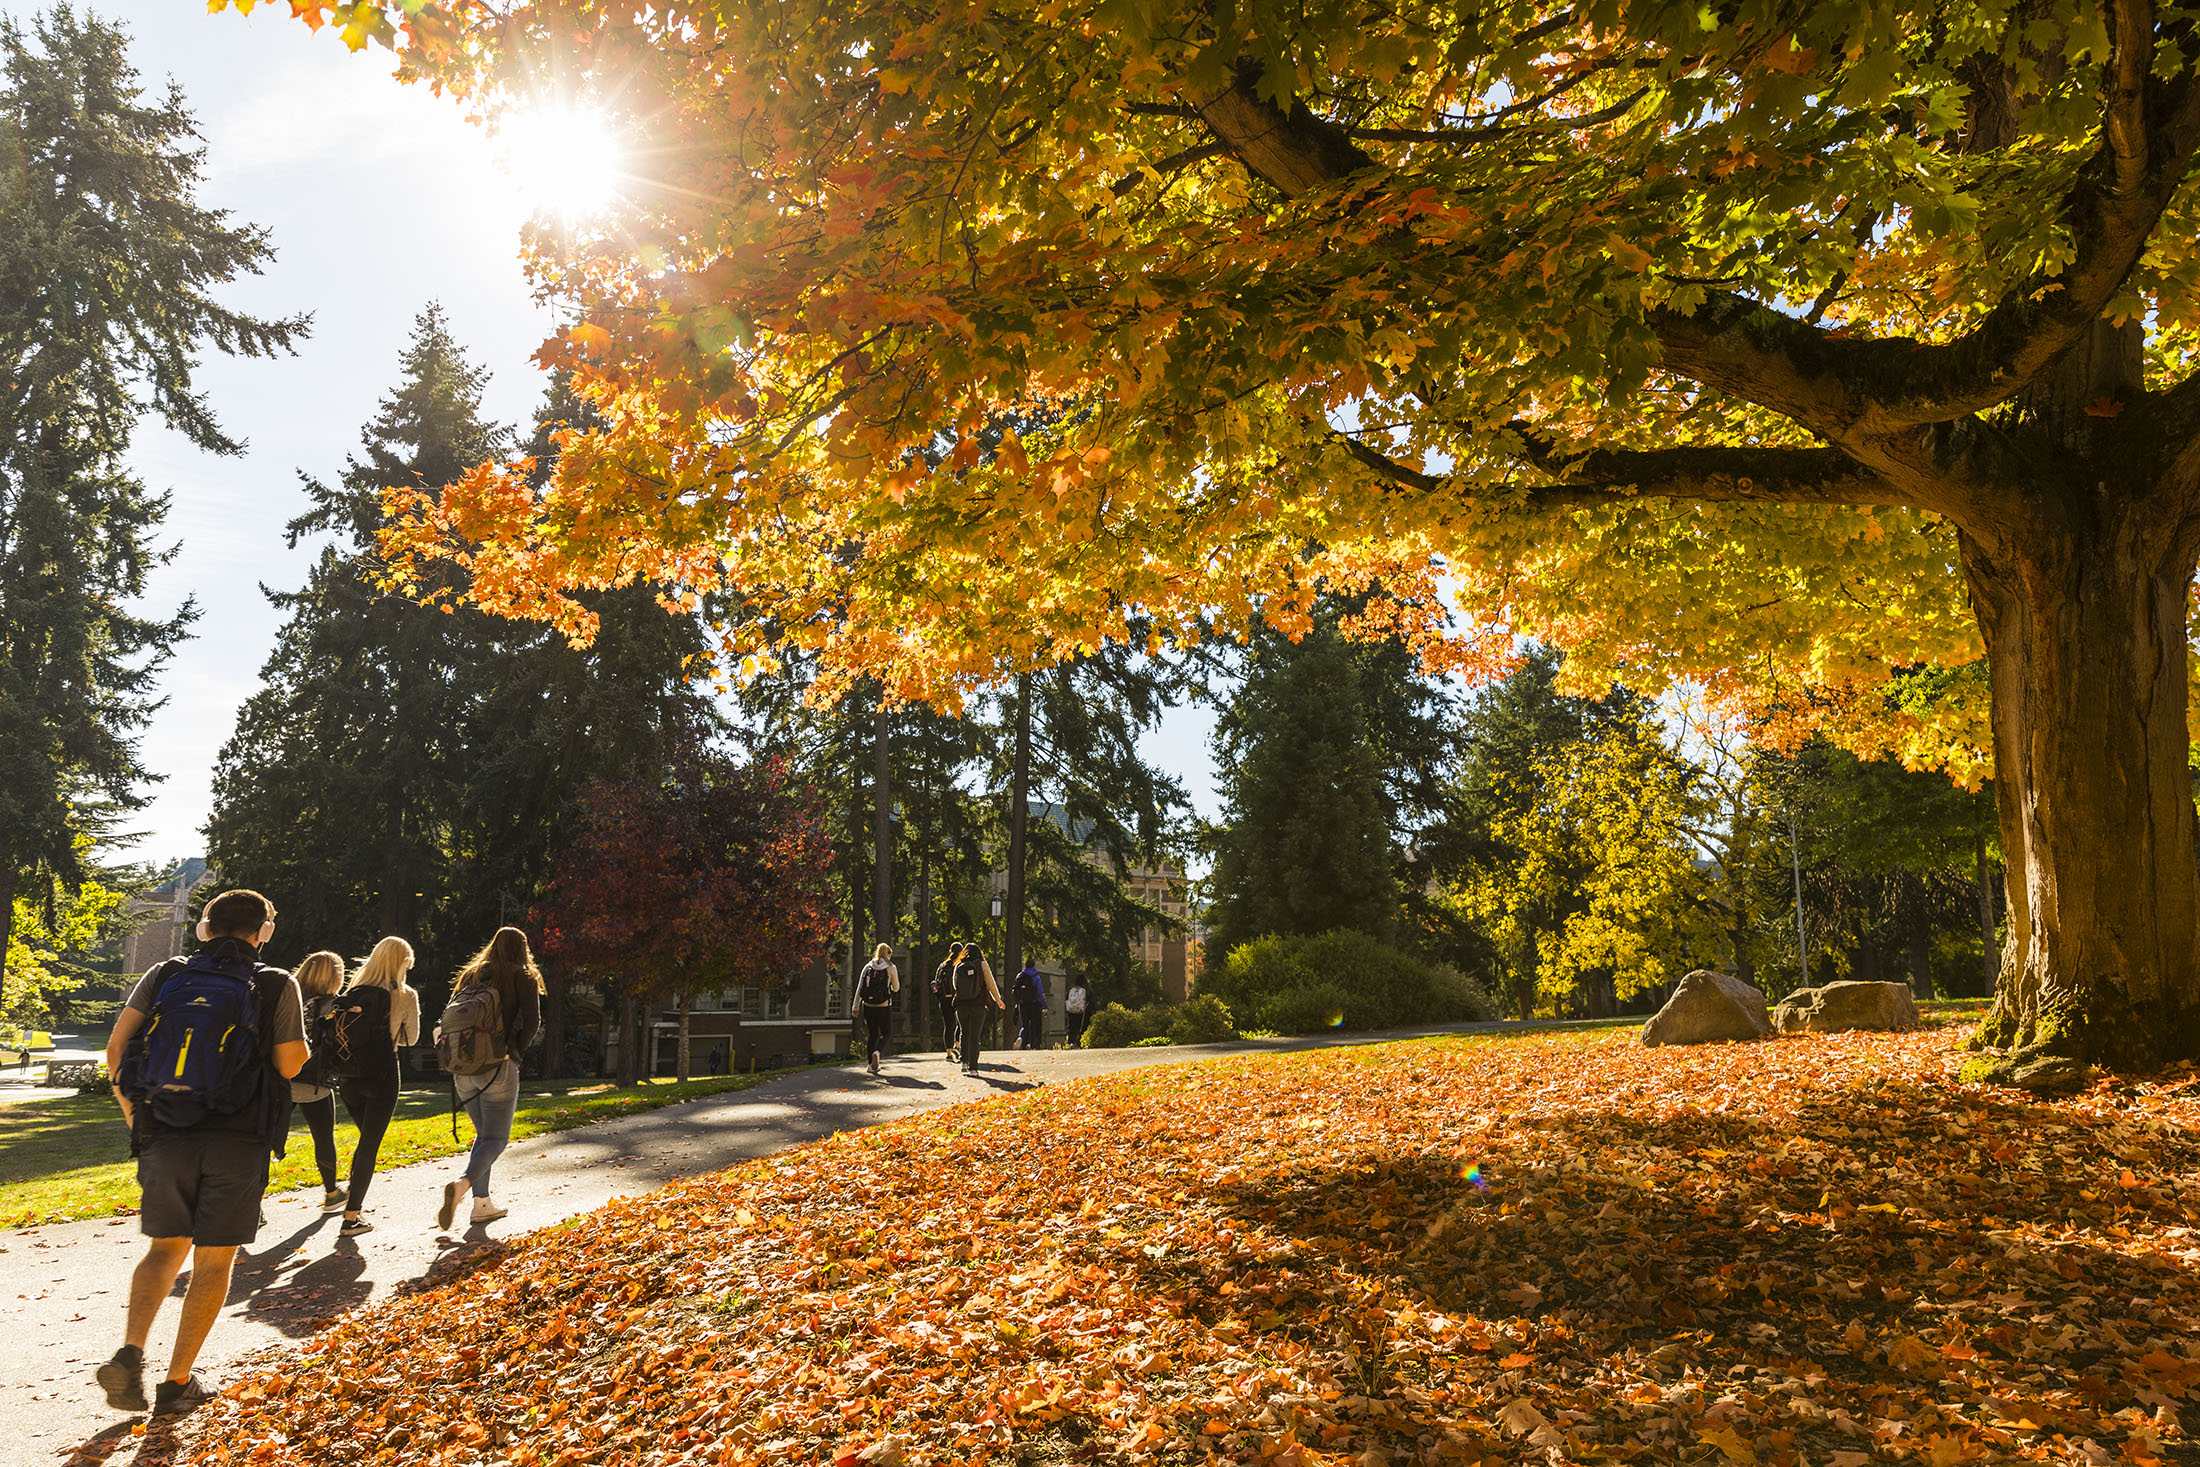 #2 MOST BEAUTIFUL CAMPUS IN AUTUMN, — Best College Reviews, 2021